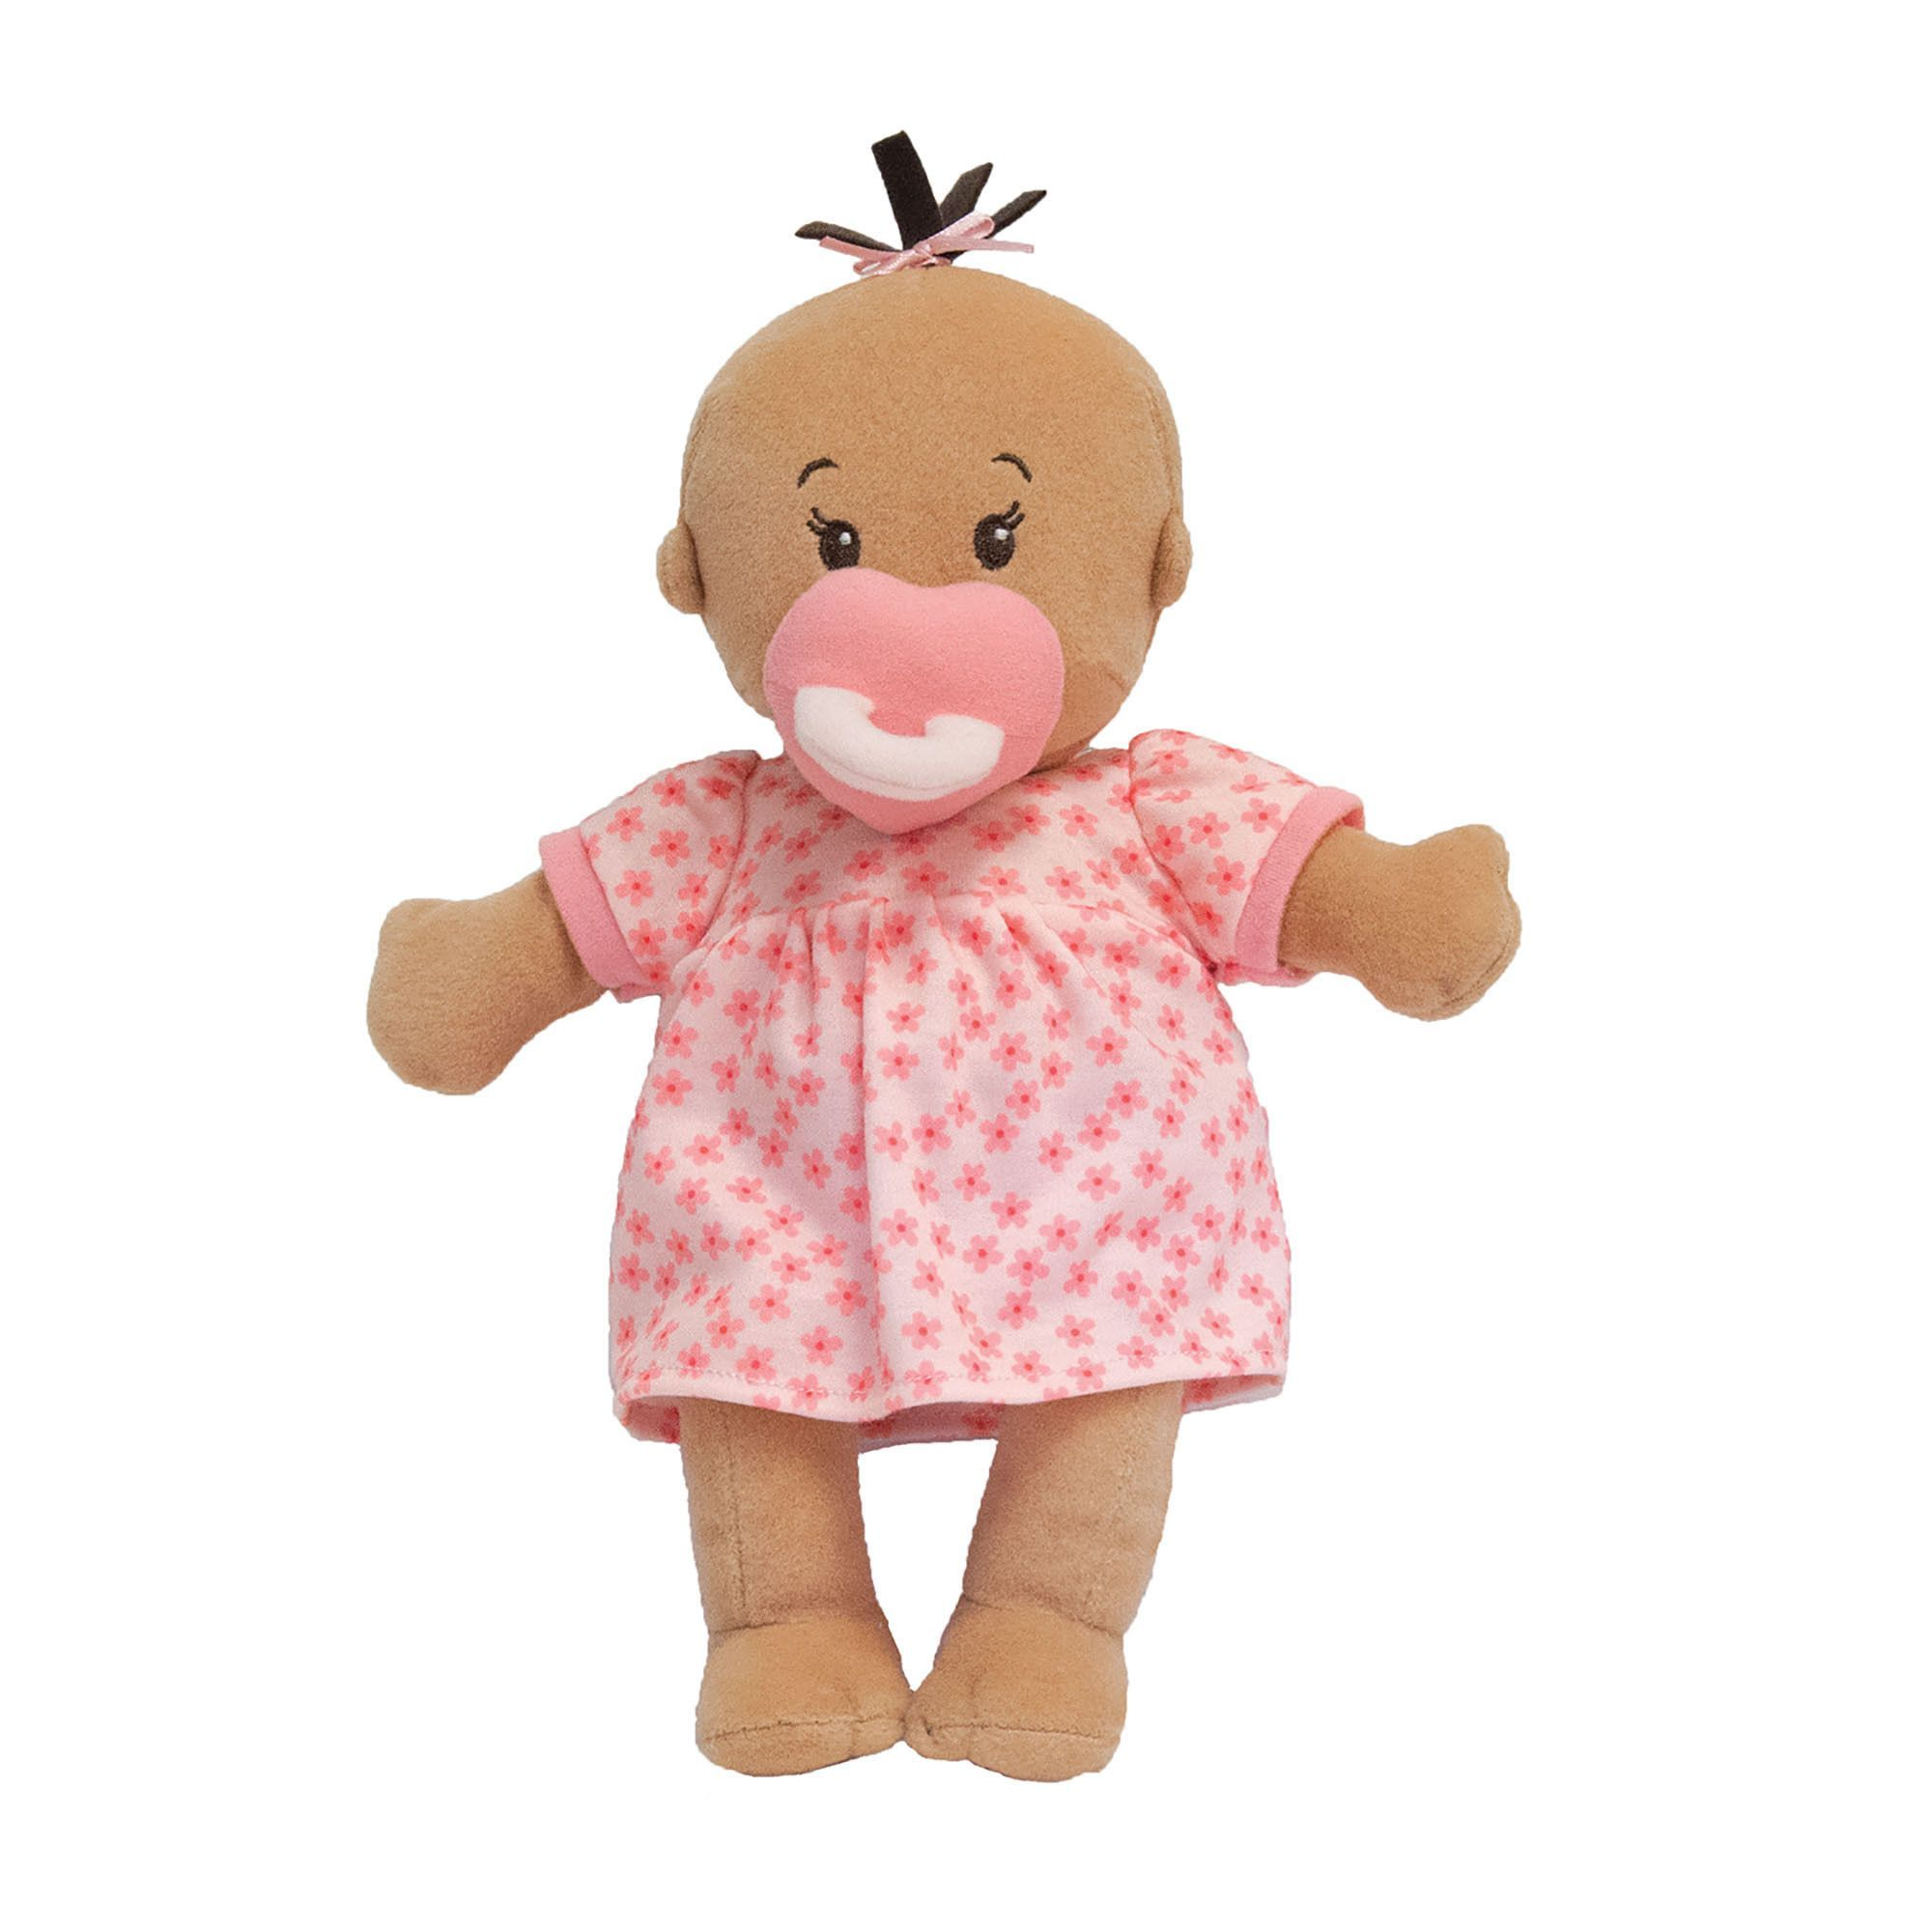 Baby toys images cartoon  Wee Baby Stella Doll Beige  Dolls  months and Babies